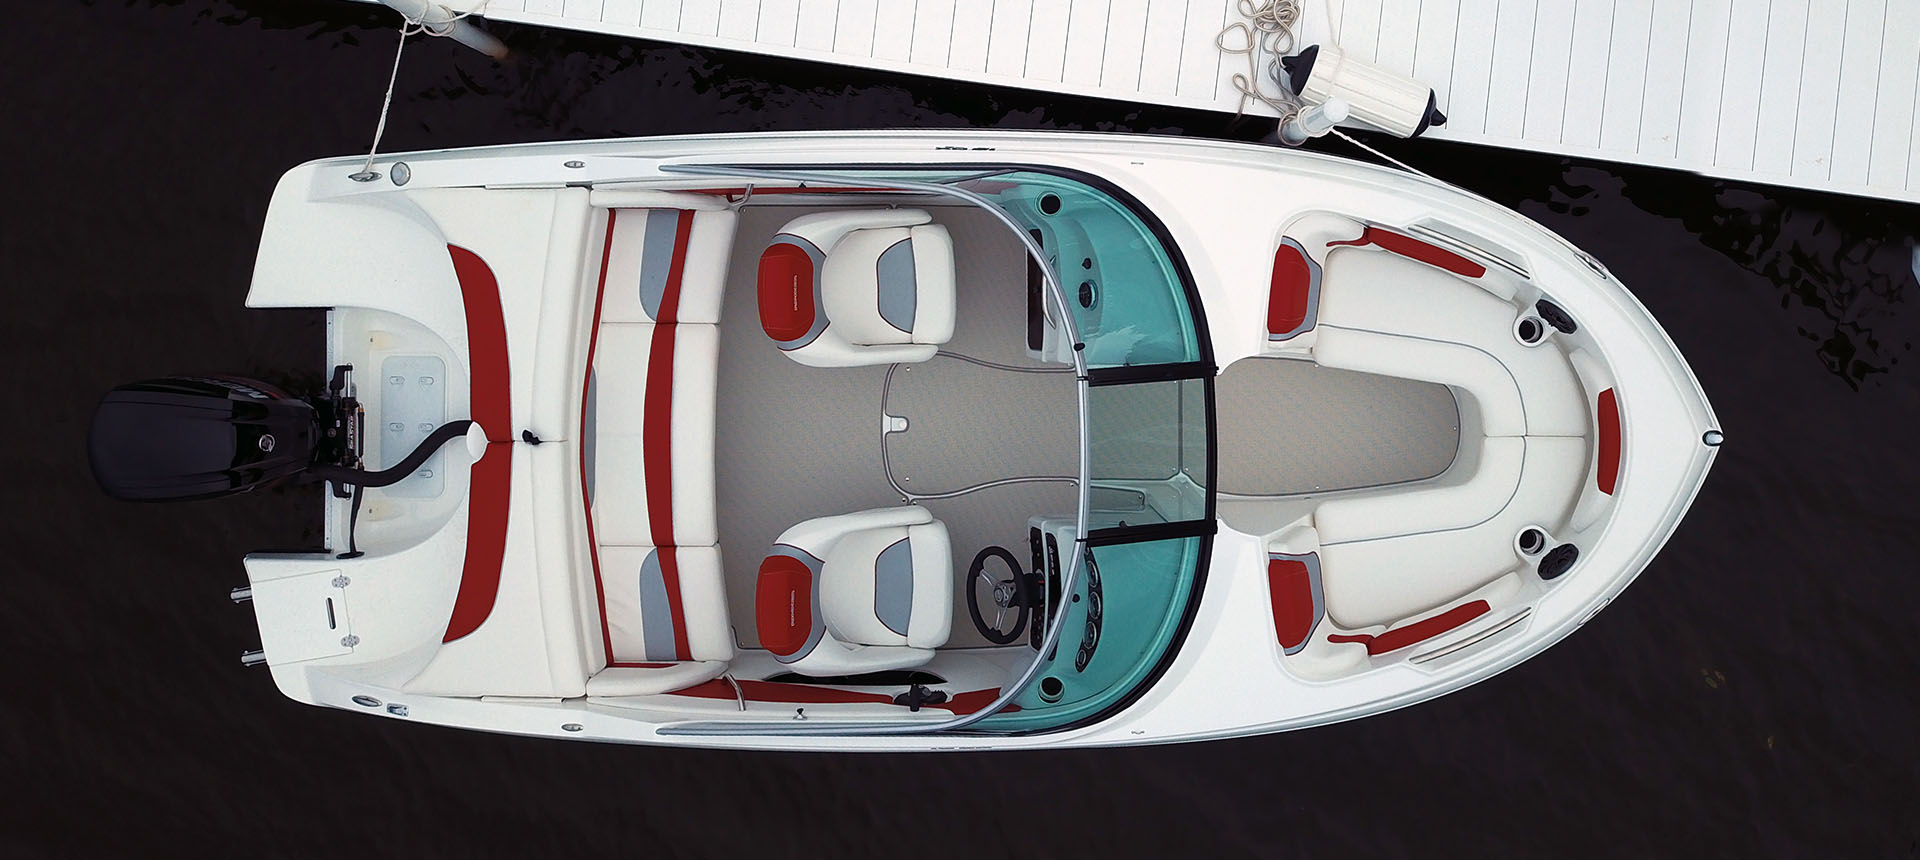 Overhead pic of 19QX Outboard boat